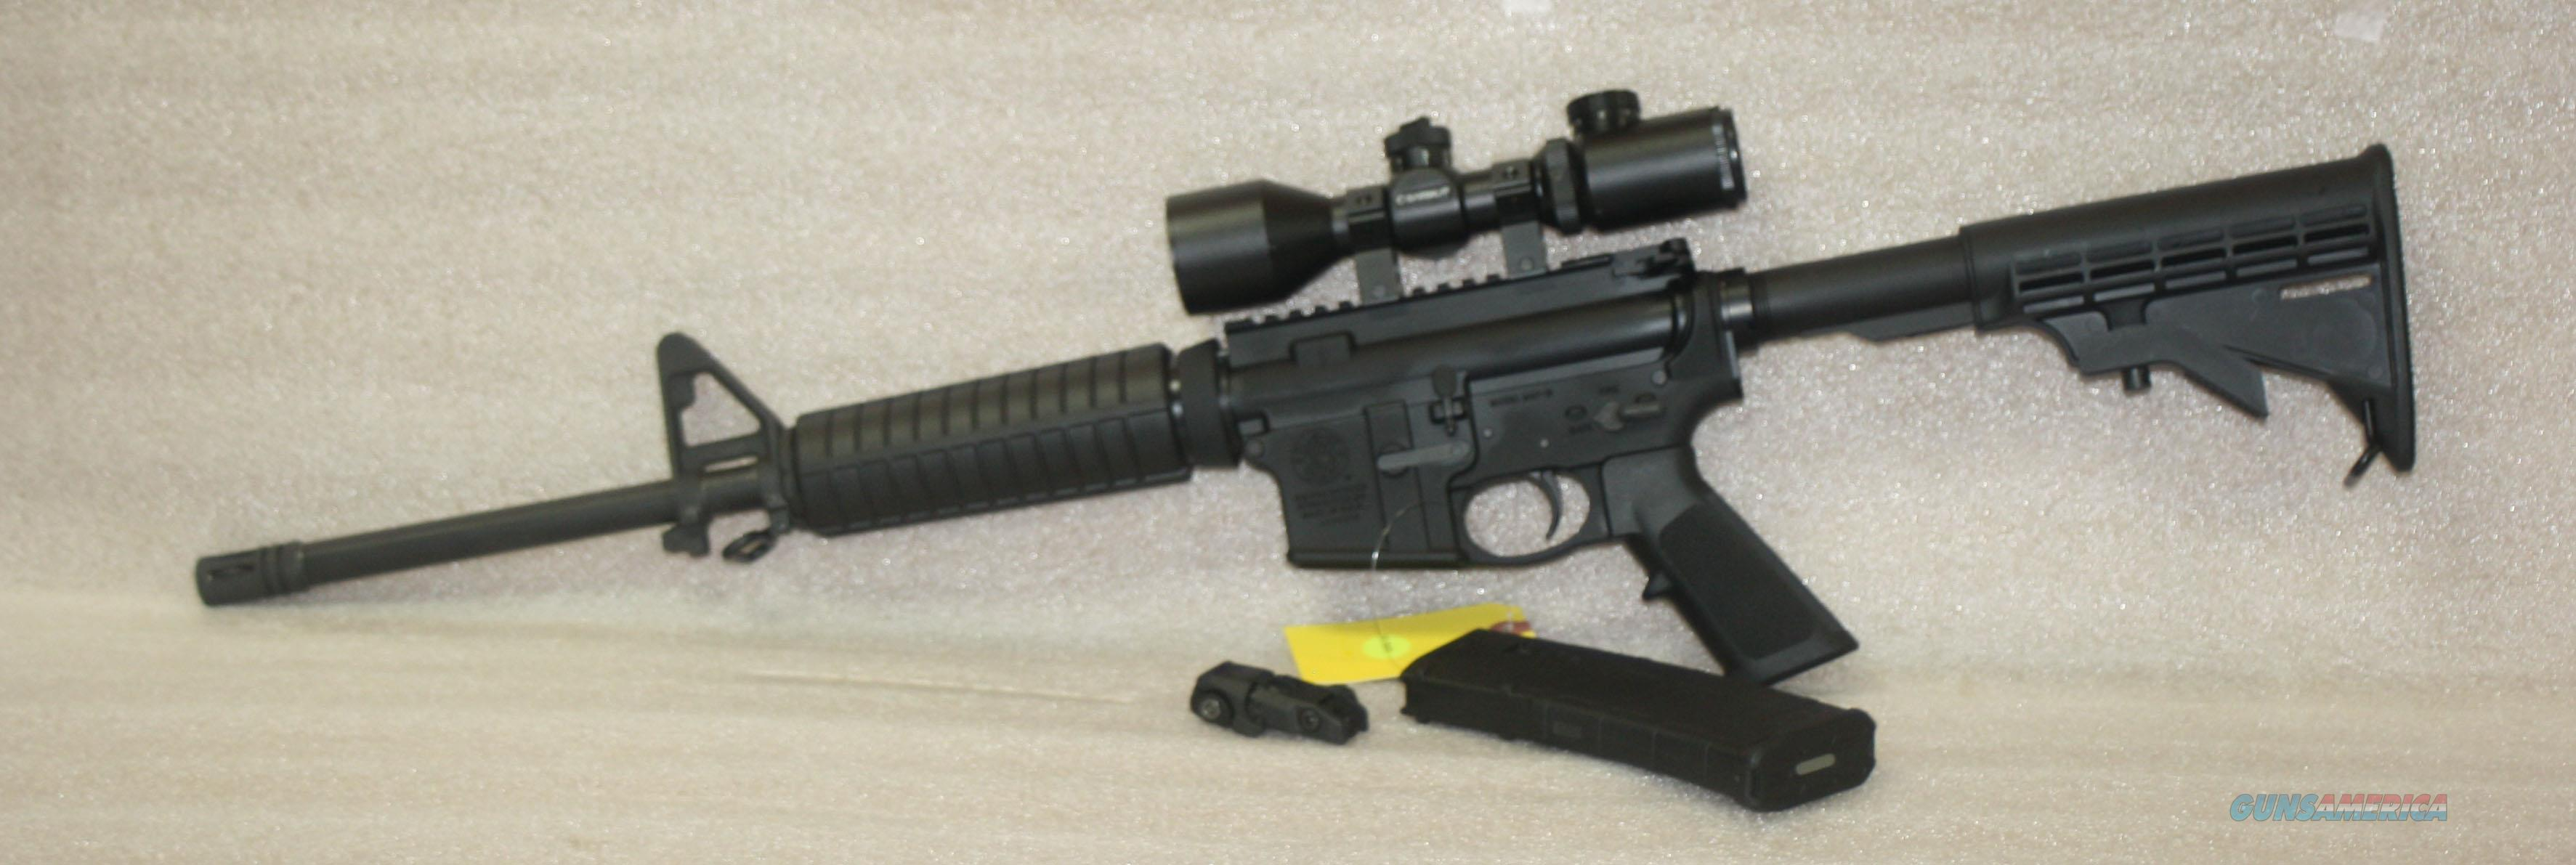 SMITH & WESSON M&P 15 SPORT 223/5.56 WITH BARSKA COMPACT 3-9 WITH ILLUMINATED RETICLE ALL LIKE NEW   Guns > Rifles > Smith & Wesson Rifles > M&P